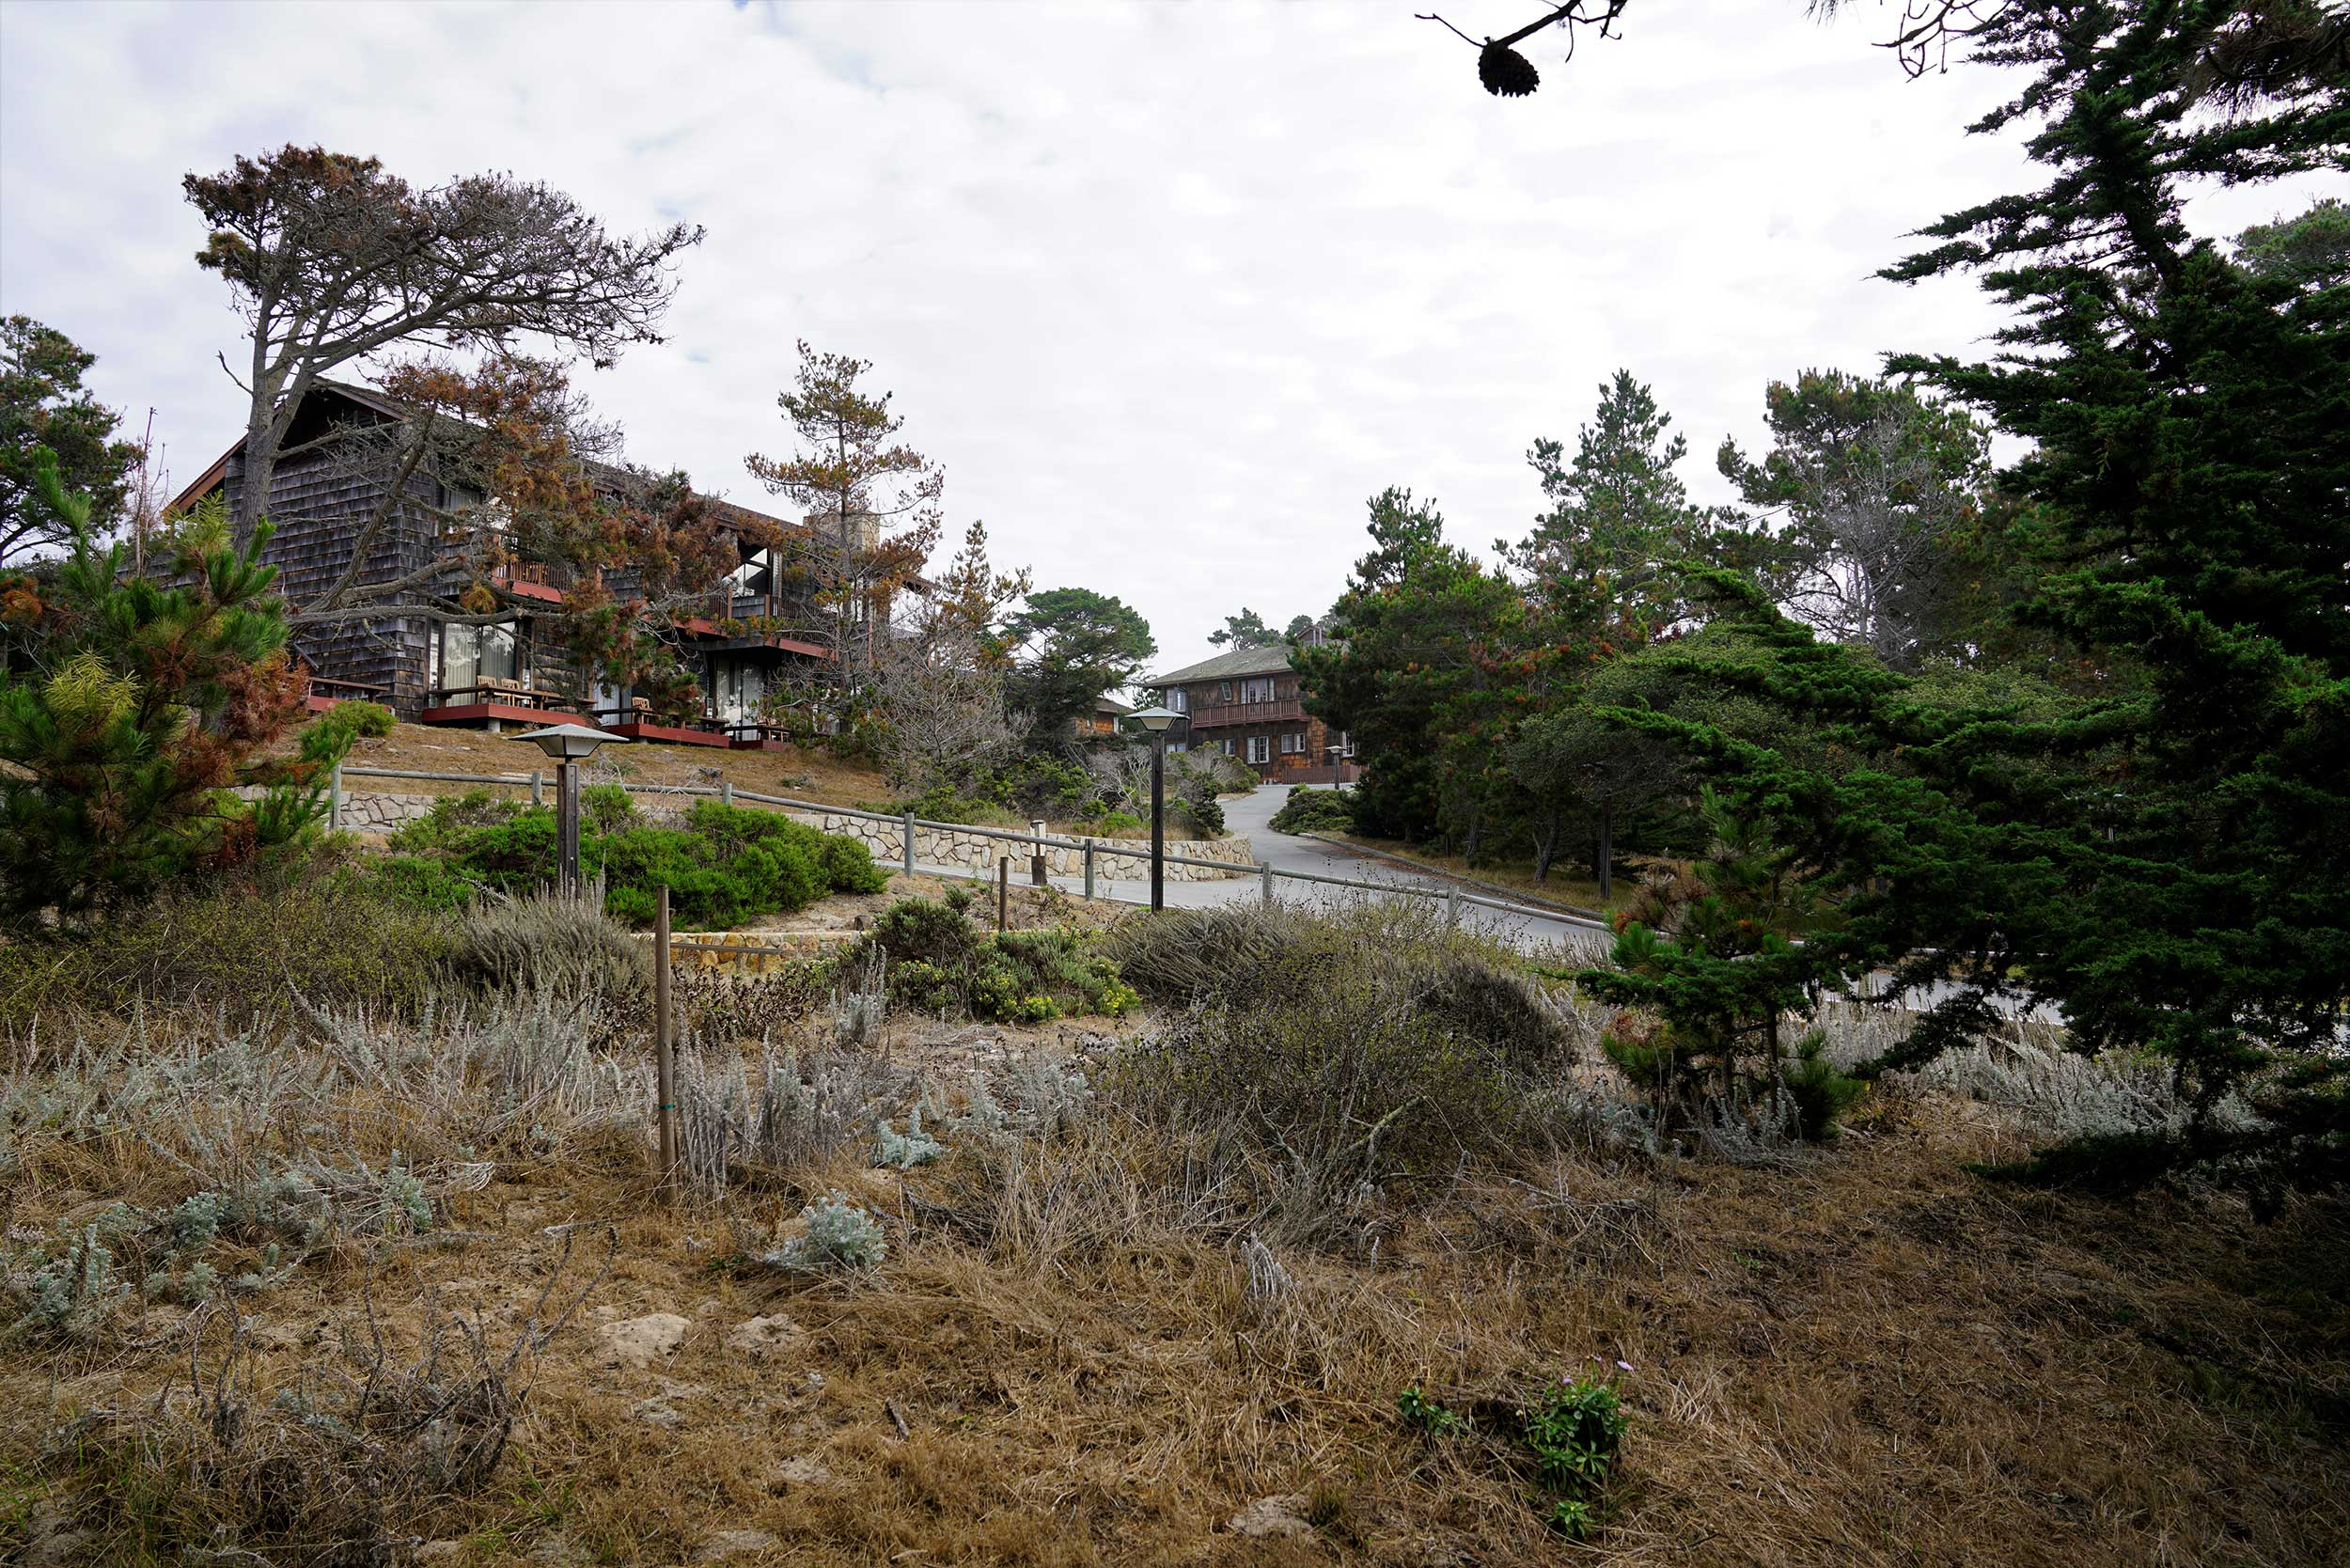 View of the Asilomar Conference Grounds